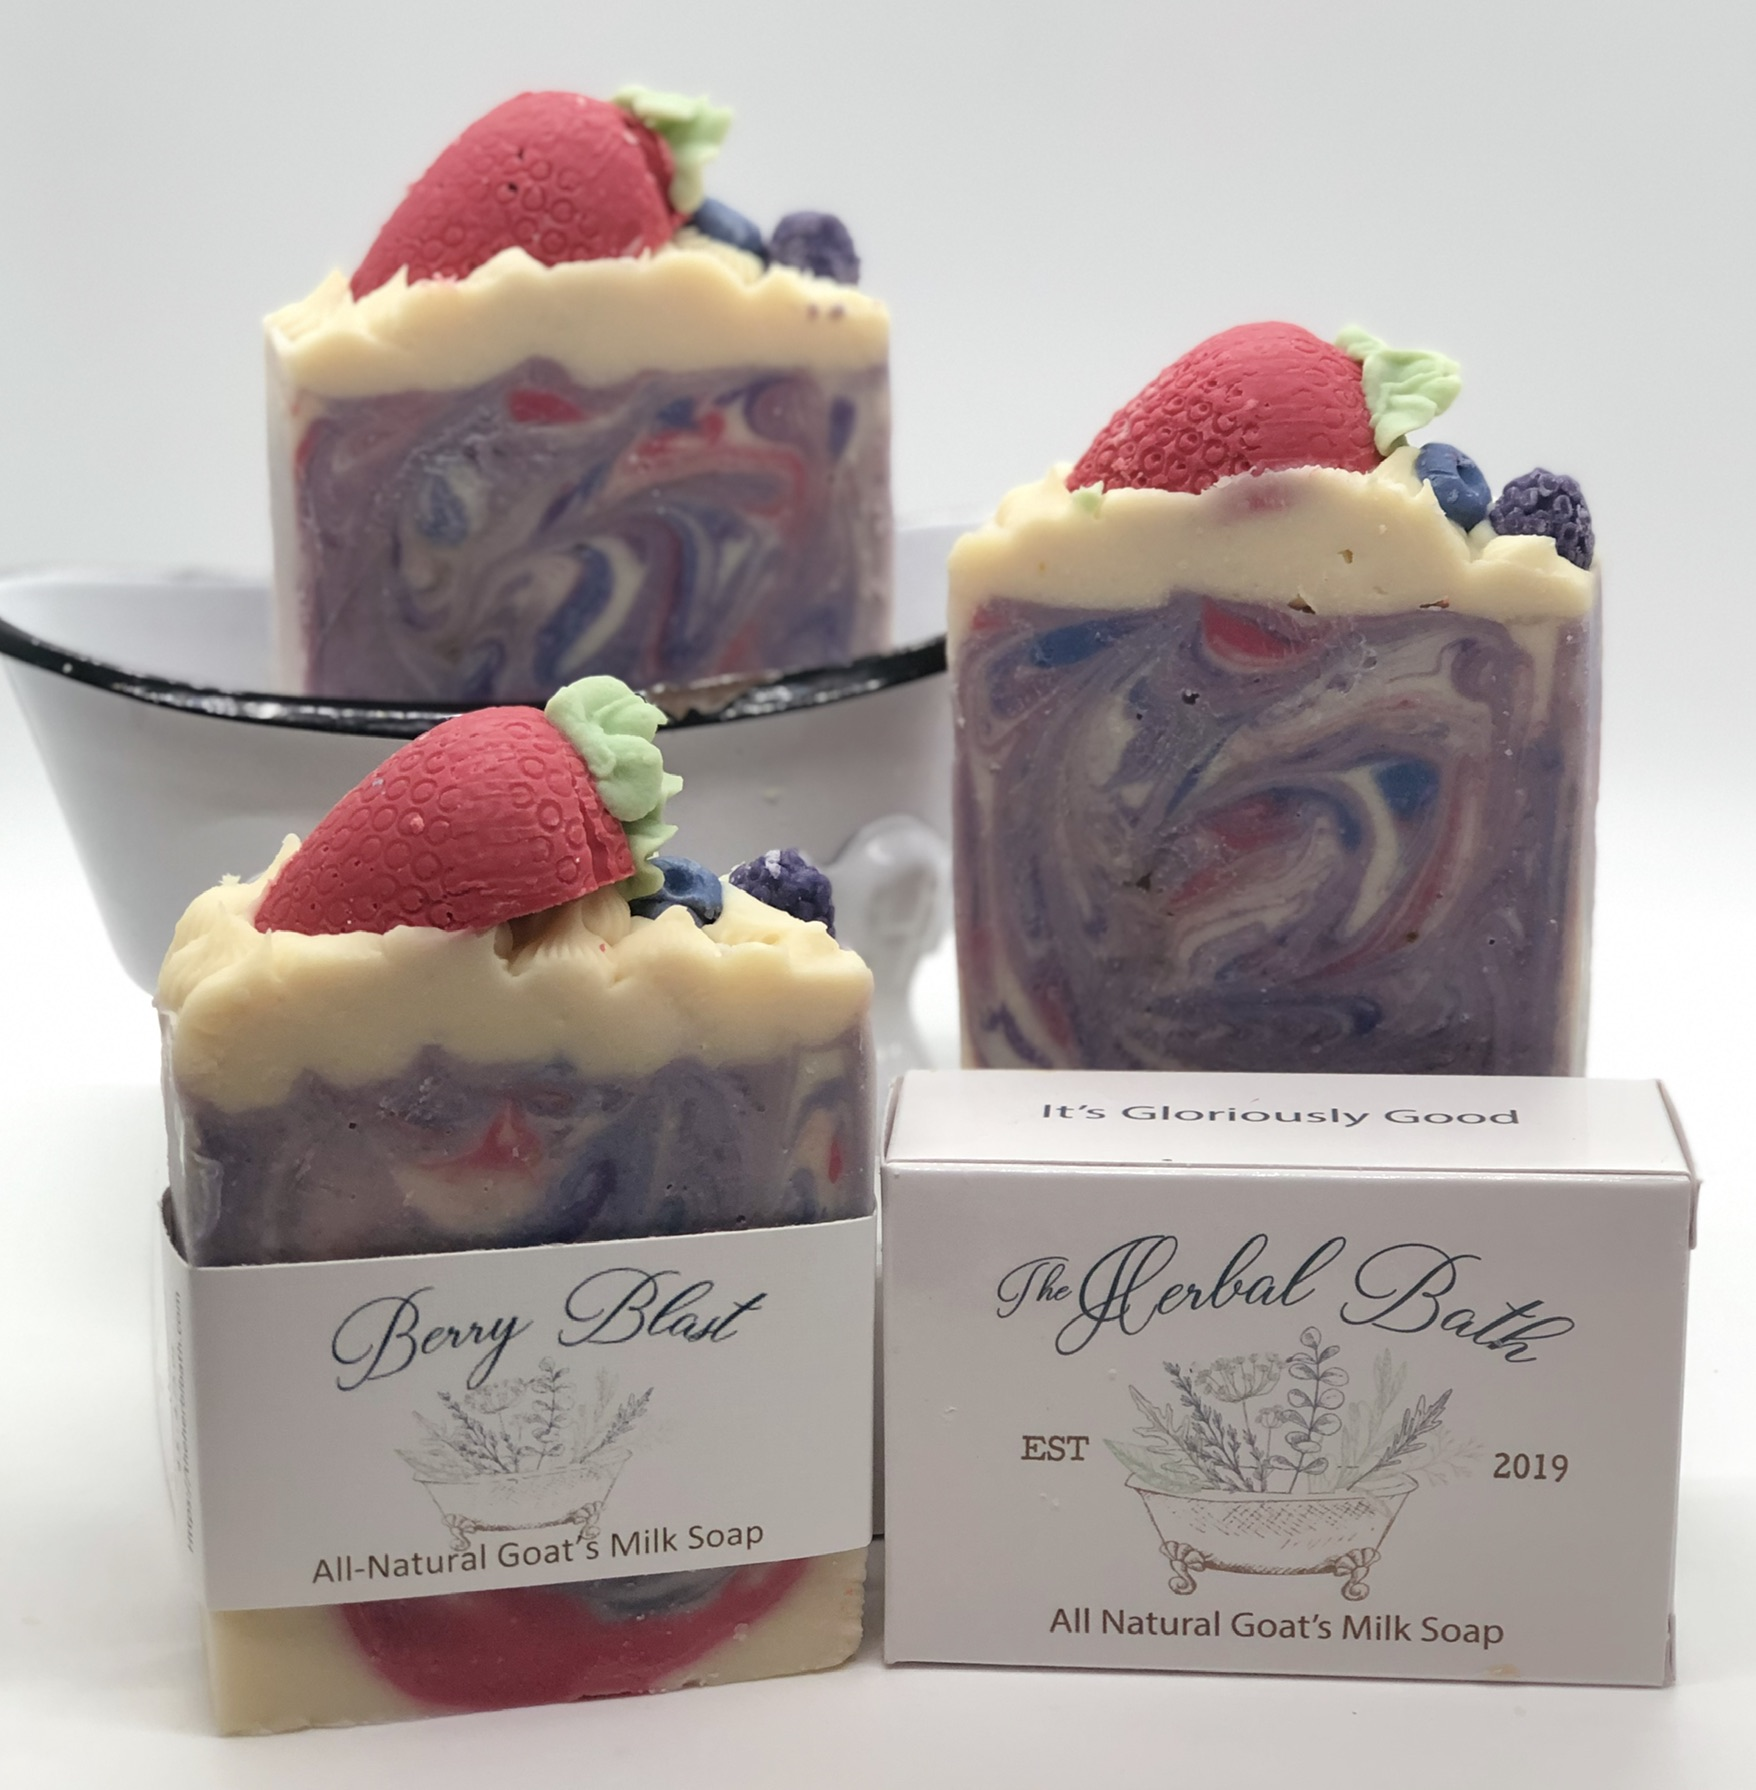 Berry Blast Soap